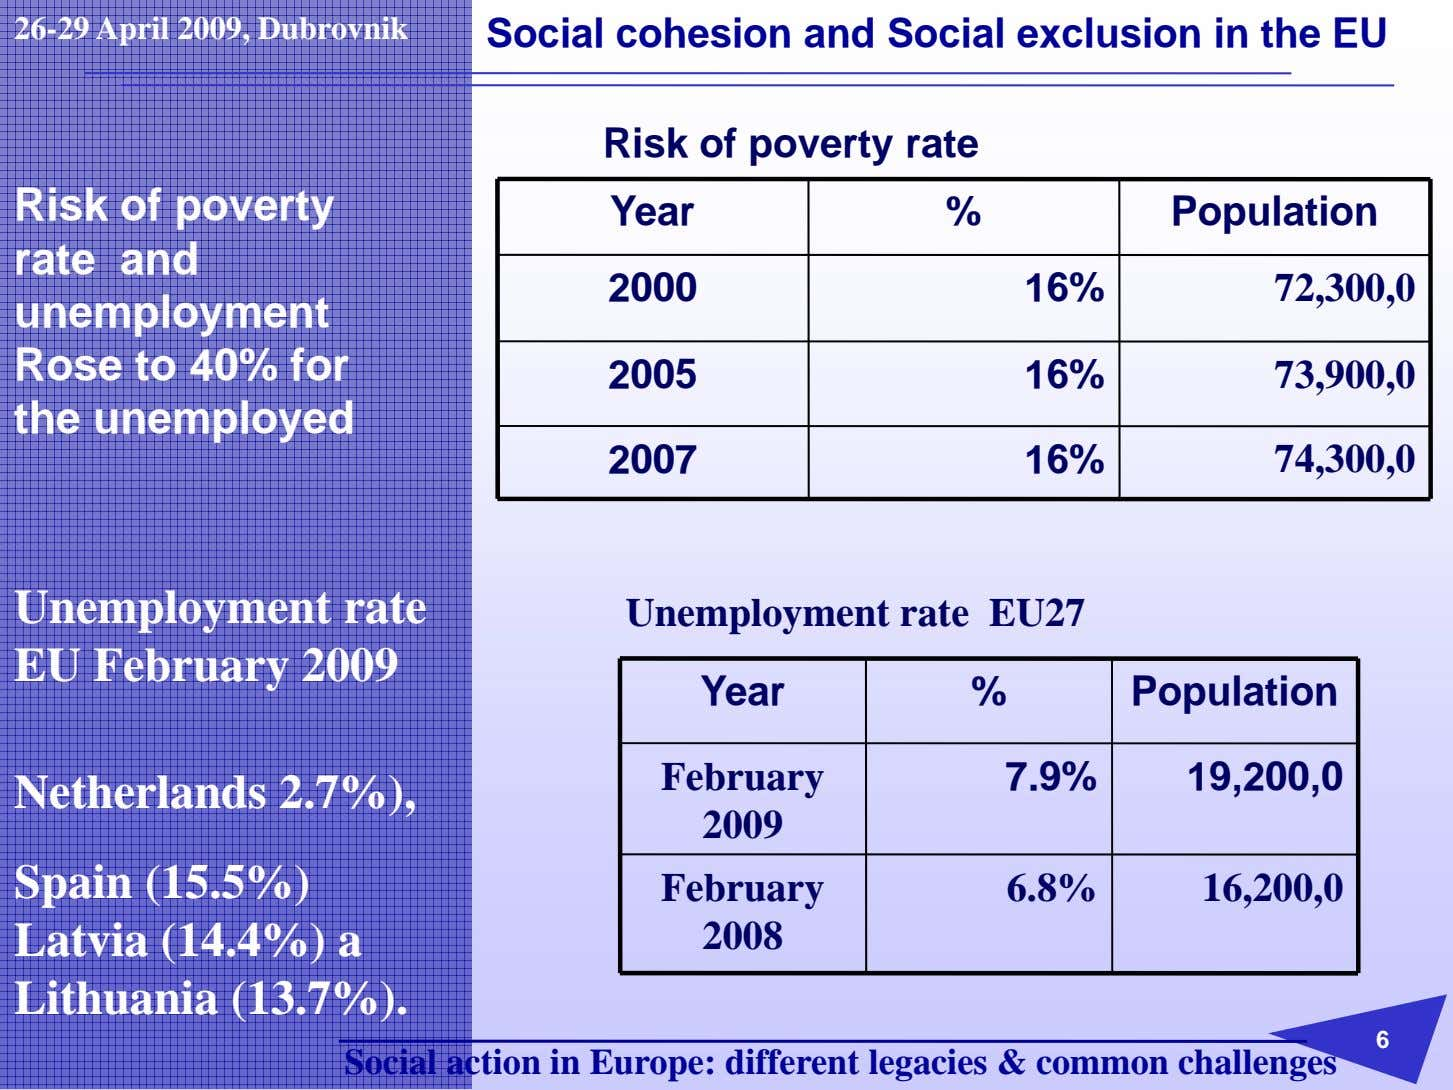 26-29 April 2009, Dubrovnik Social cohesion and Social exclusion in the EU Risk of poverty